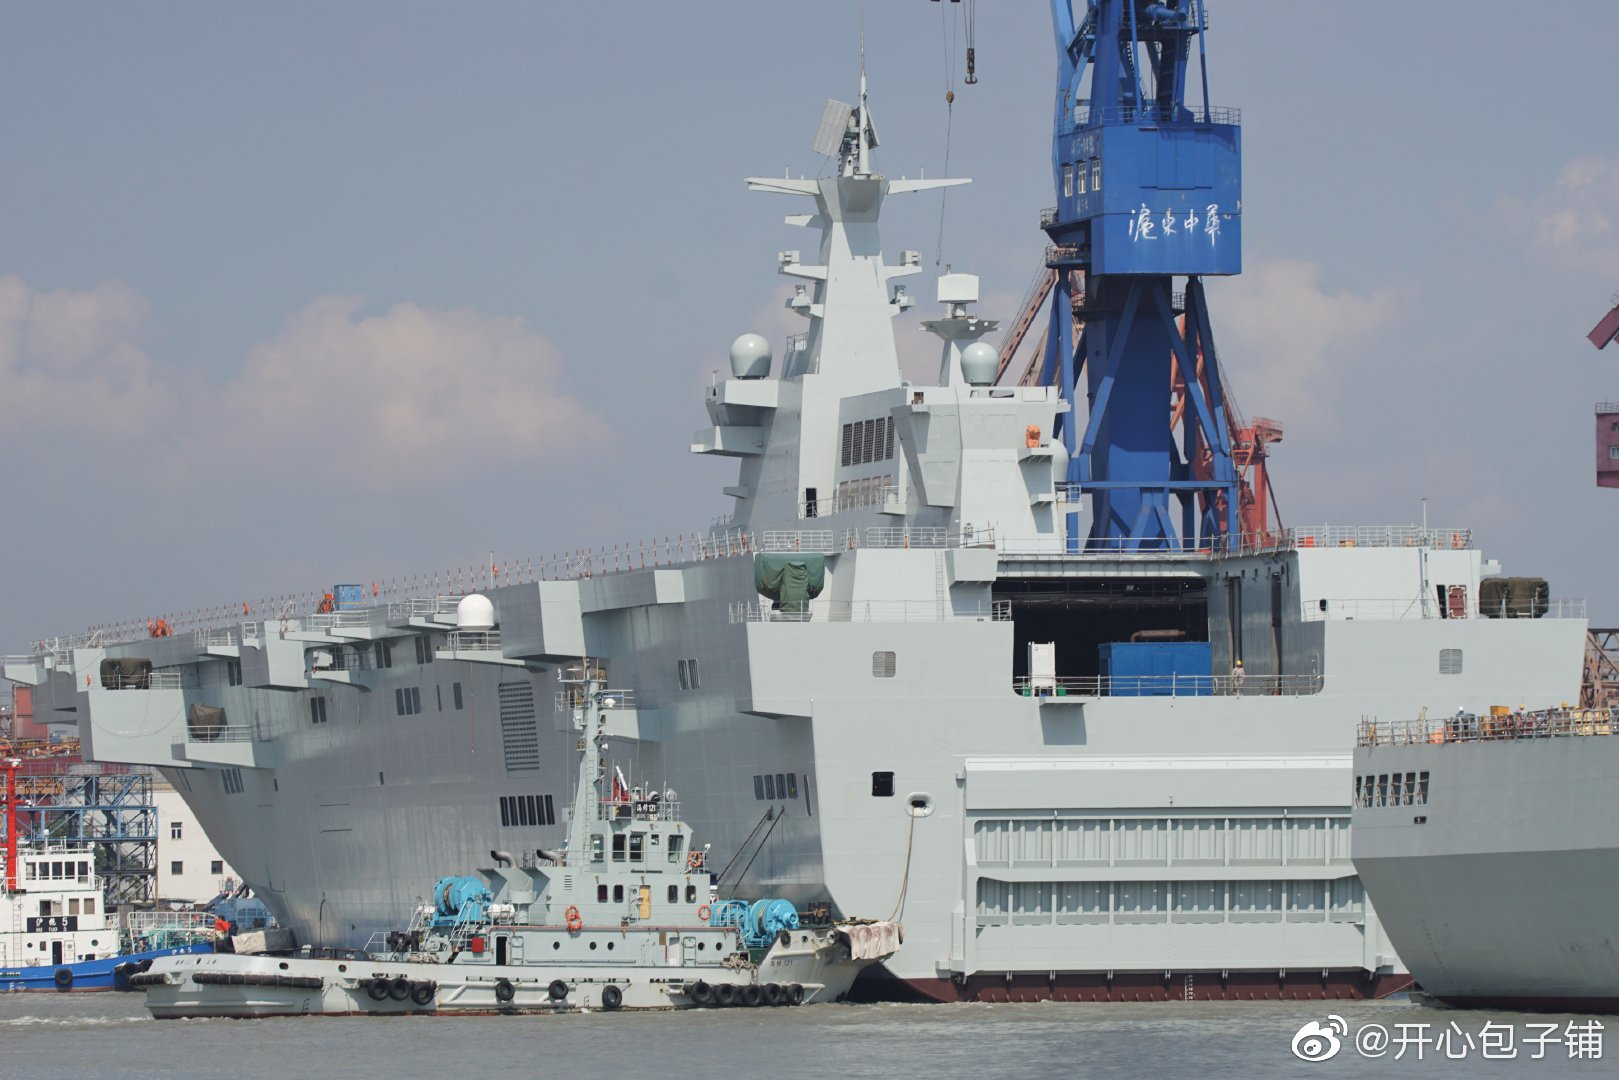 Type 075 landing helicopter dock (LHD) 48803484962_a7beec095d_o